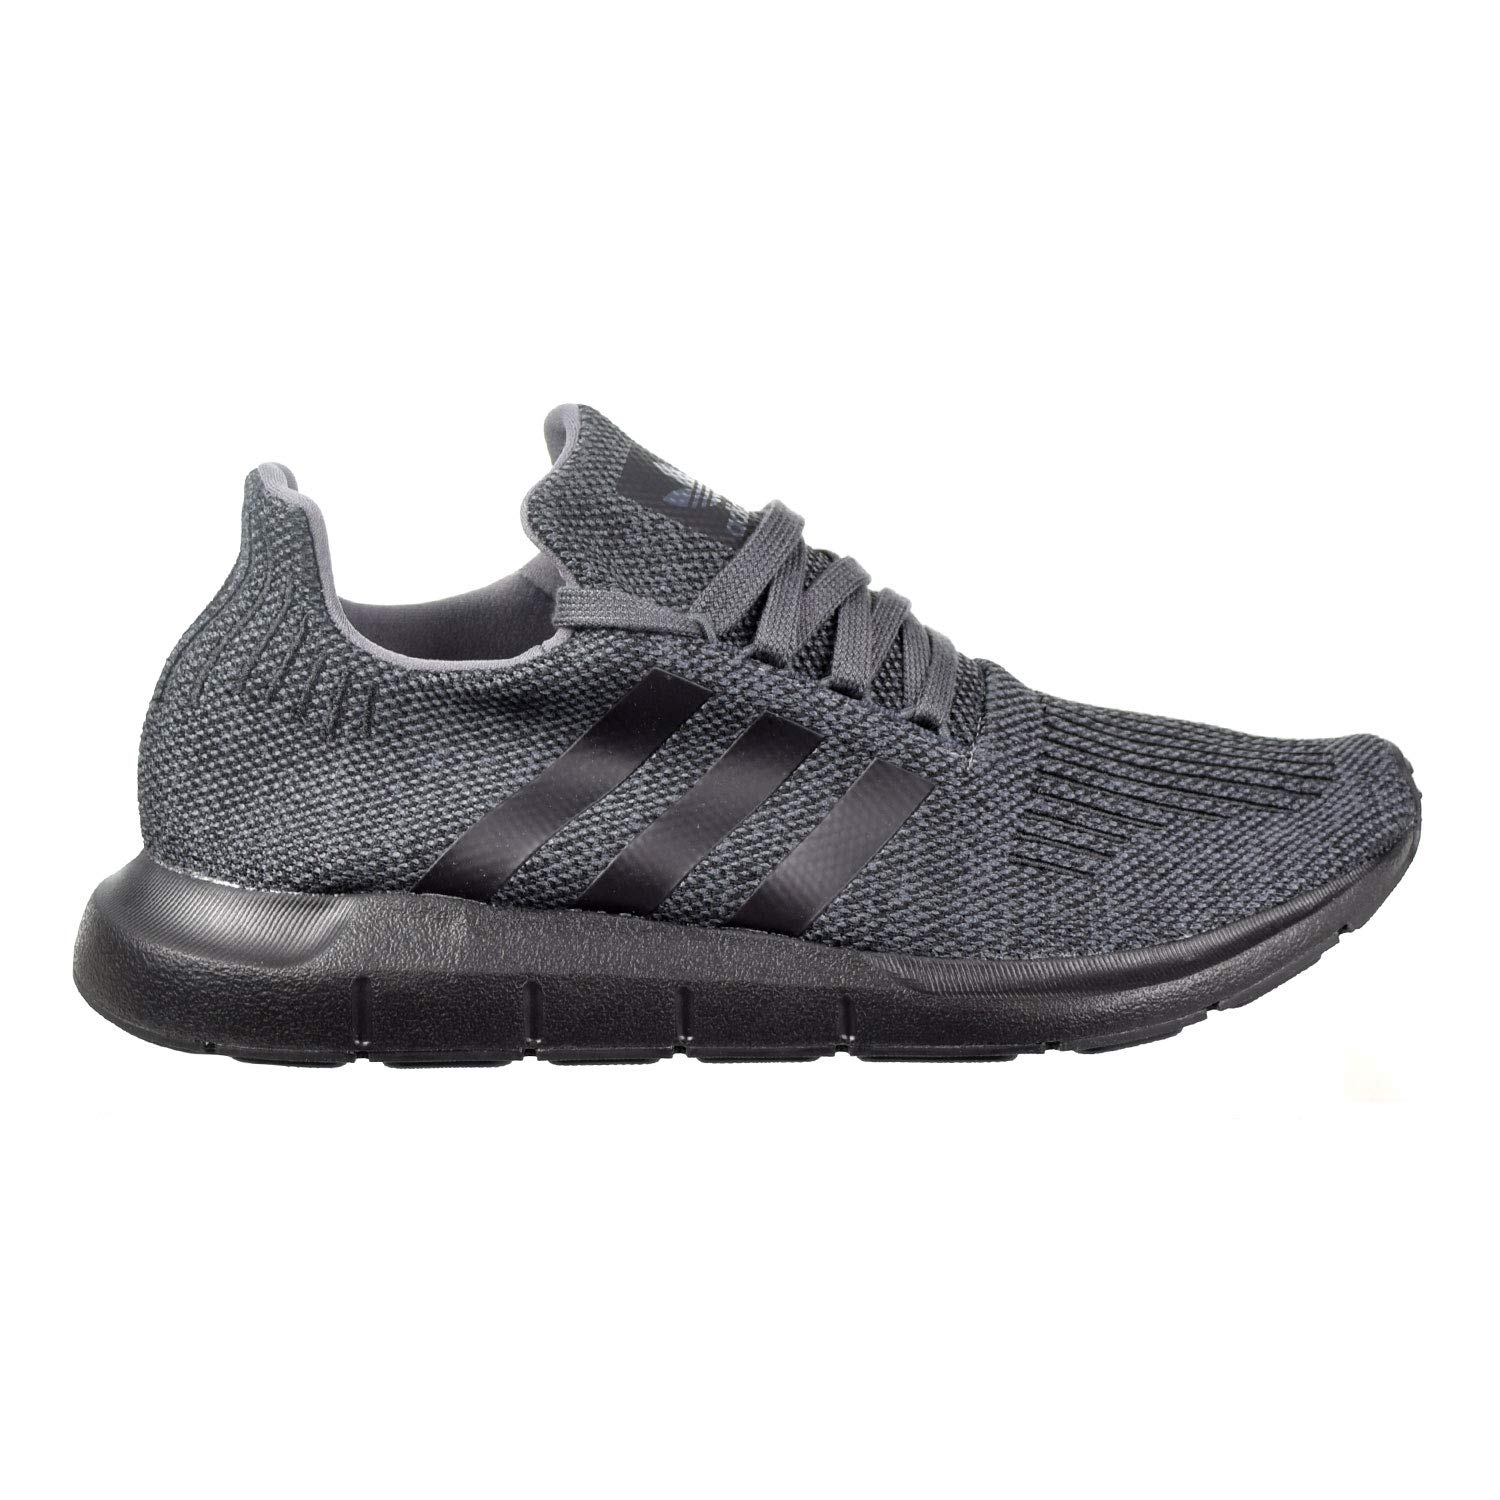 Image of adidas Swift Run M Men's Shoes Clothing